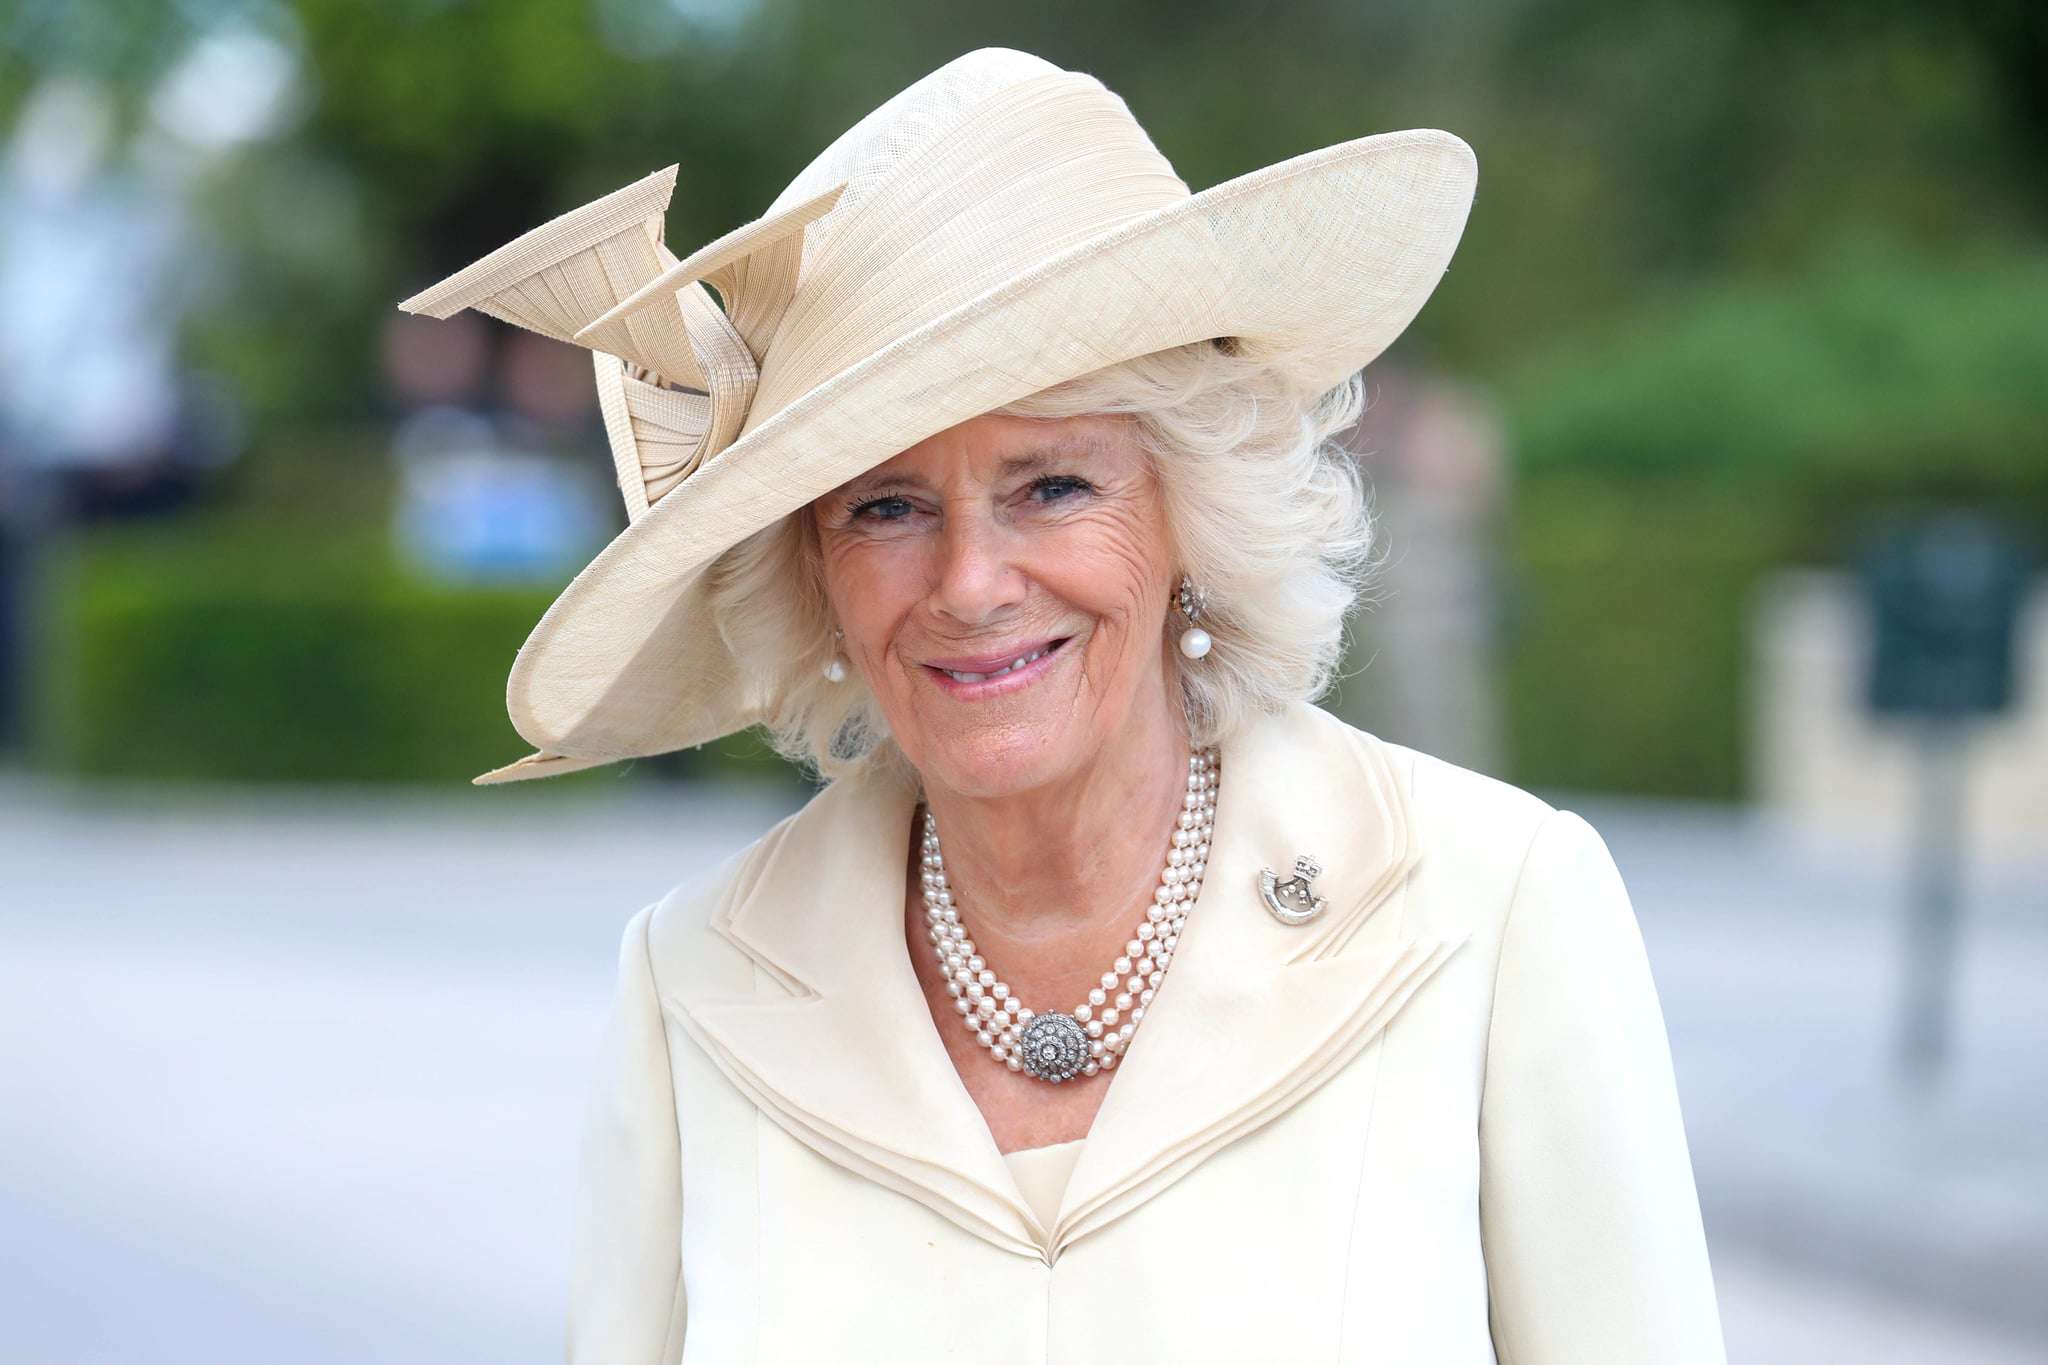 BAYEUX, FRANCE - JUNE 06: Camilla, Duchess of Cornwall arrives at Bayeux War Cemetery on June 06, 2019 in Bayeux, France. Veterans, families, visitors, political leaders and military personnel are gathering in Normandy to commemorate D-Day, which heralded the Allied advance towards Germany and victory about 11 months later.  (Photo by Chris Jackson/Getty Images)